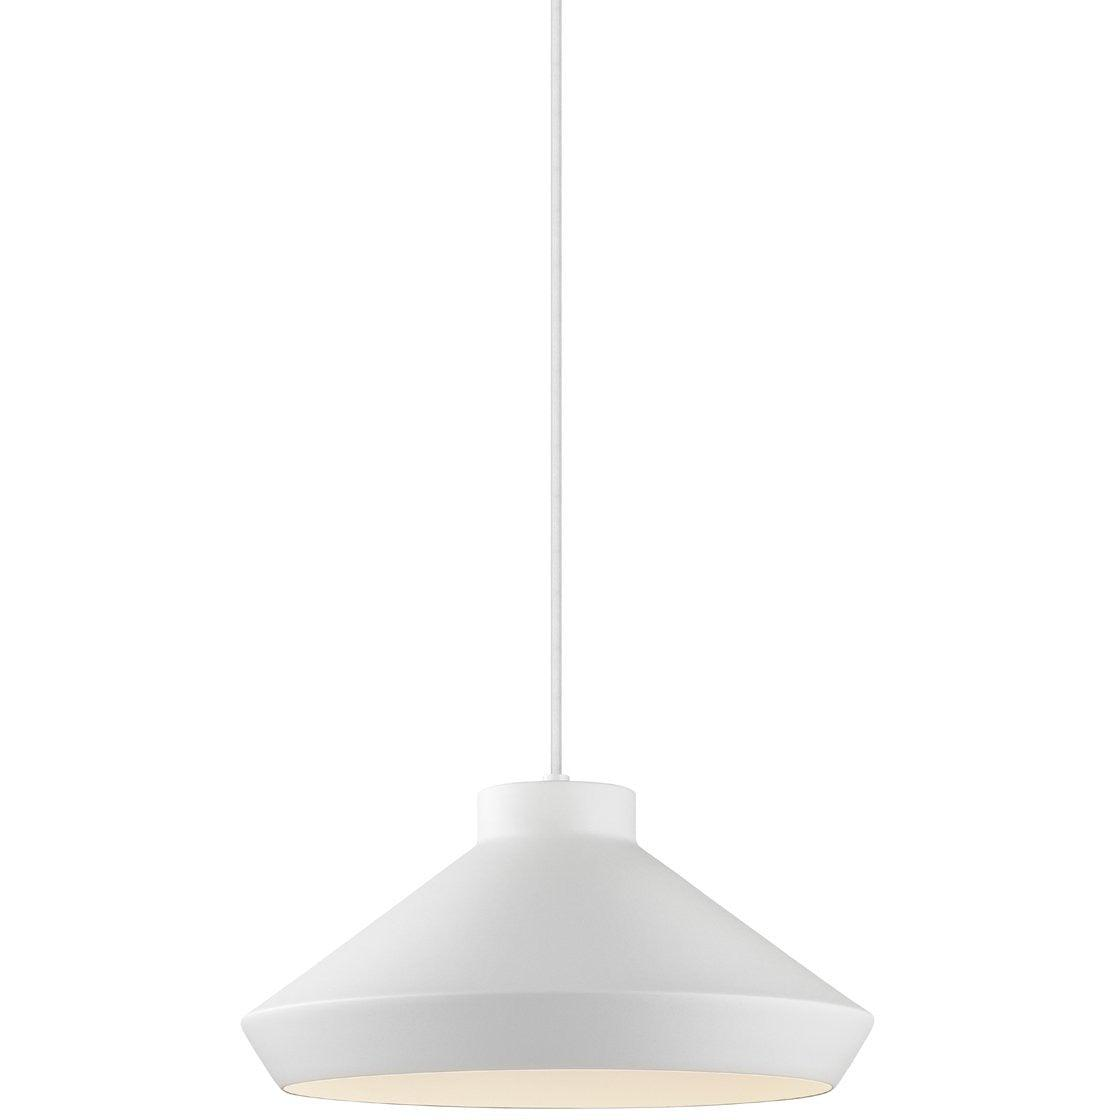 Sonneman - A Way of Light - 2752.03-E - One Light Pendant - Koma - Satin White